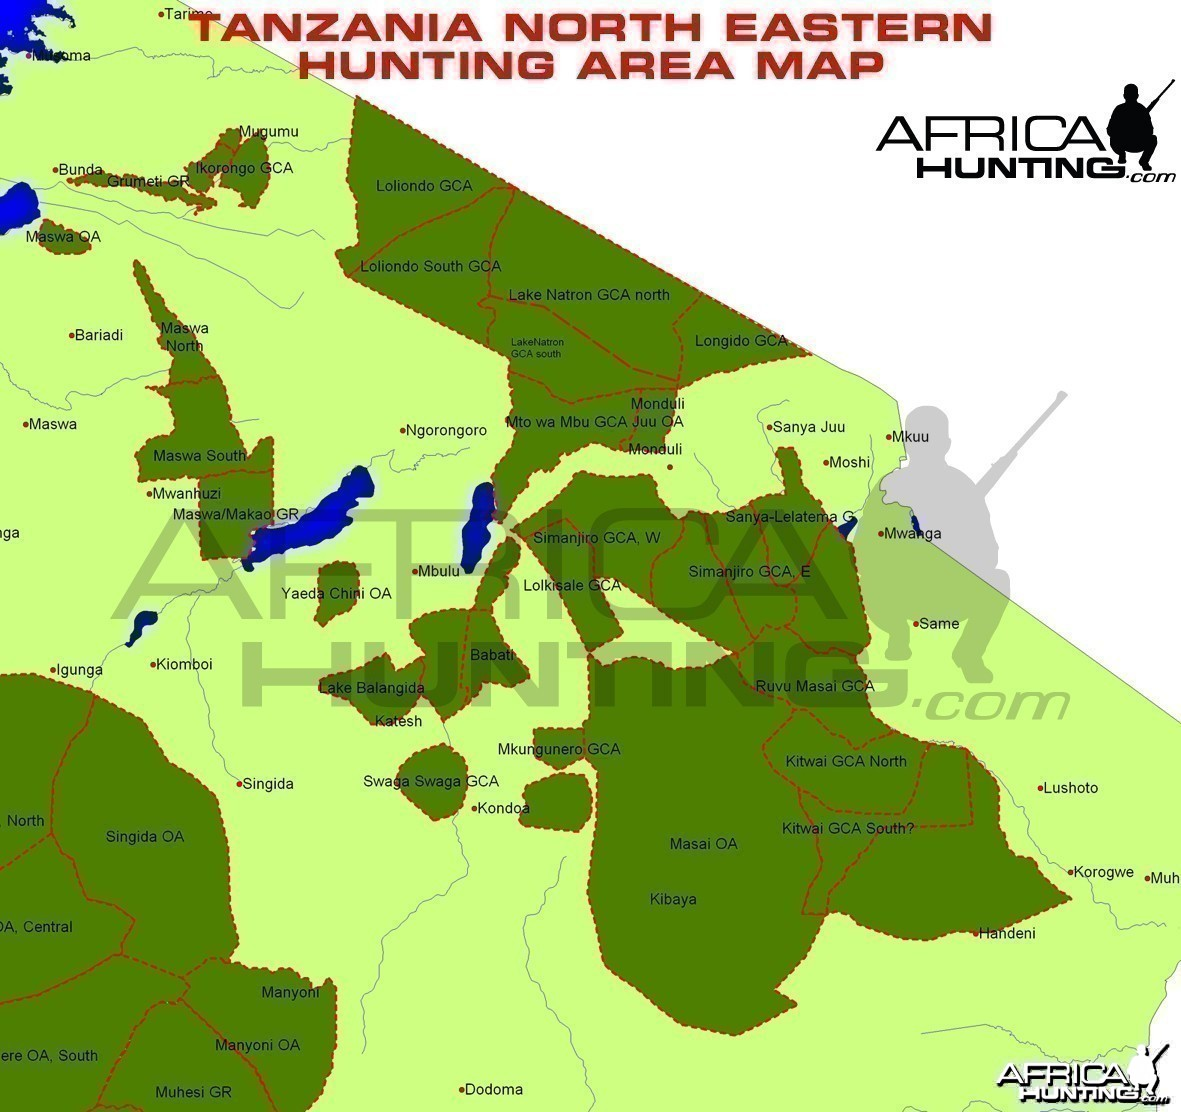 Hunting Areas of North Eastern Tanzania